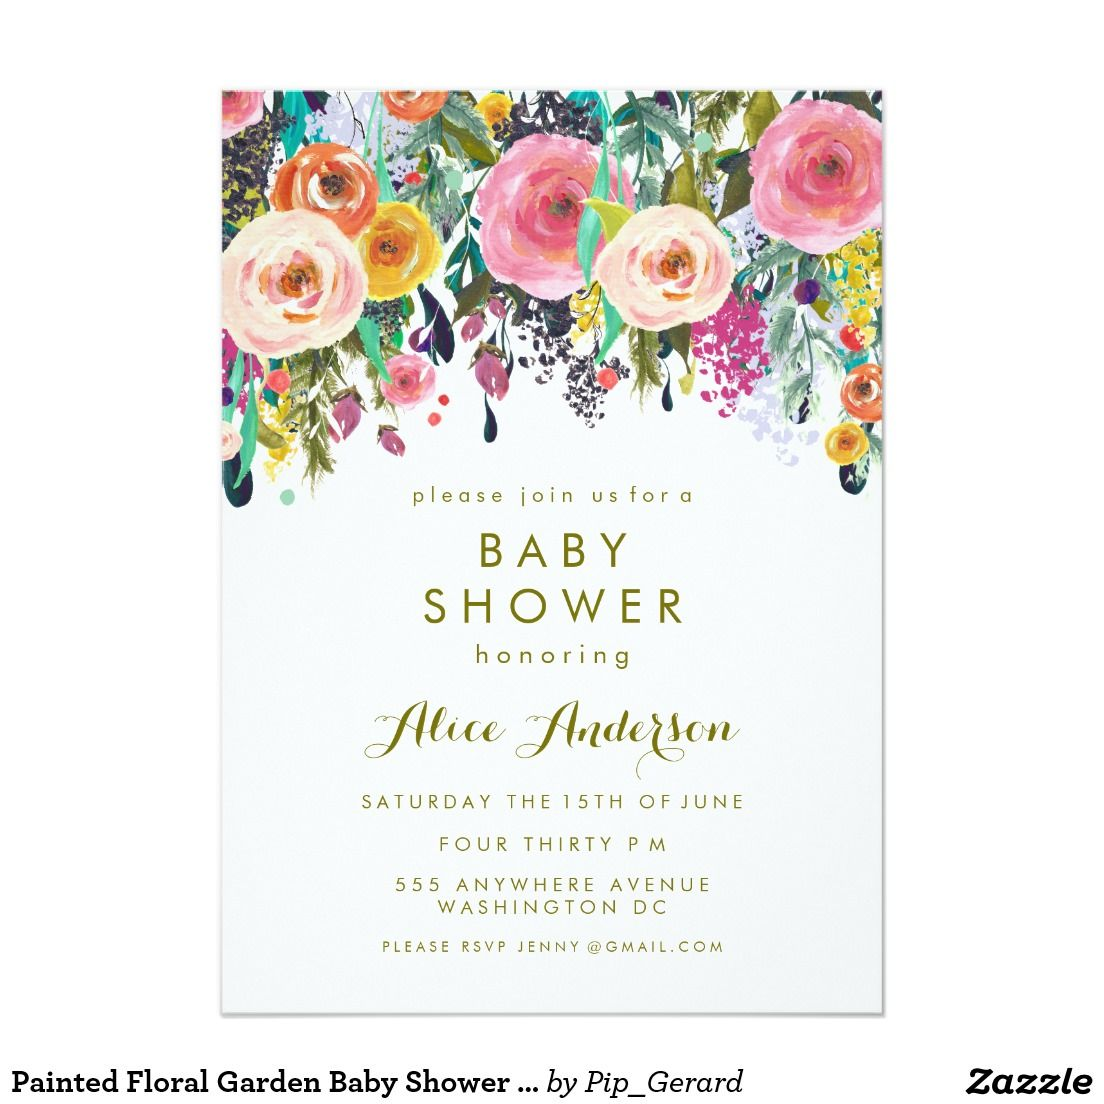 Painted floral garden baby shower invite artwork designed by pip explore zazzle invitations and more painted floral garden baby shower filmwisefo Images